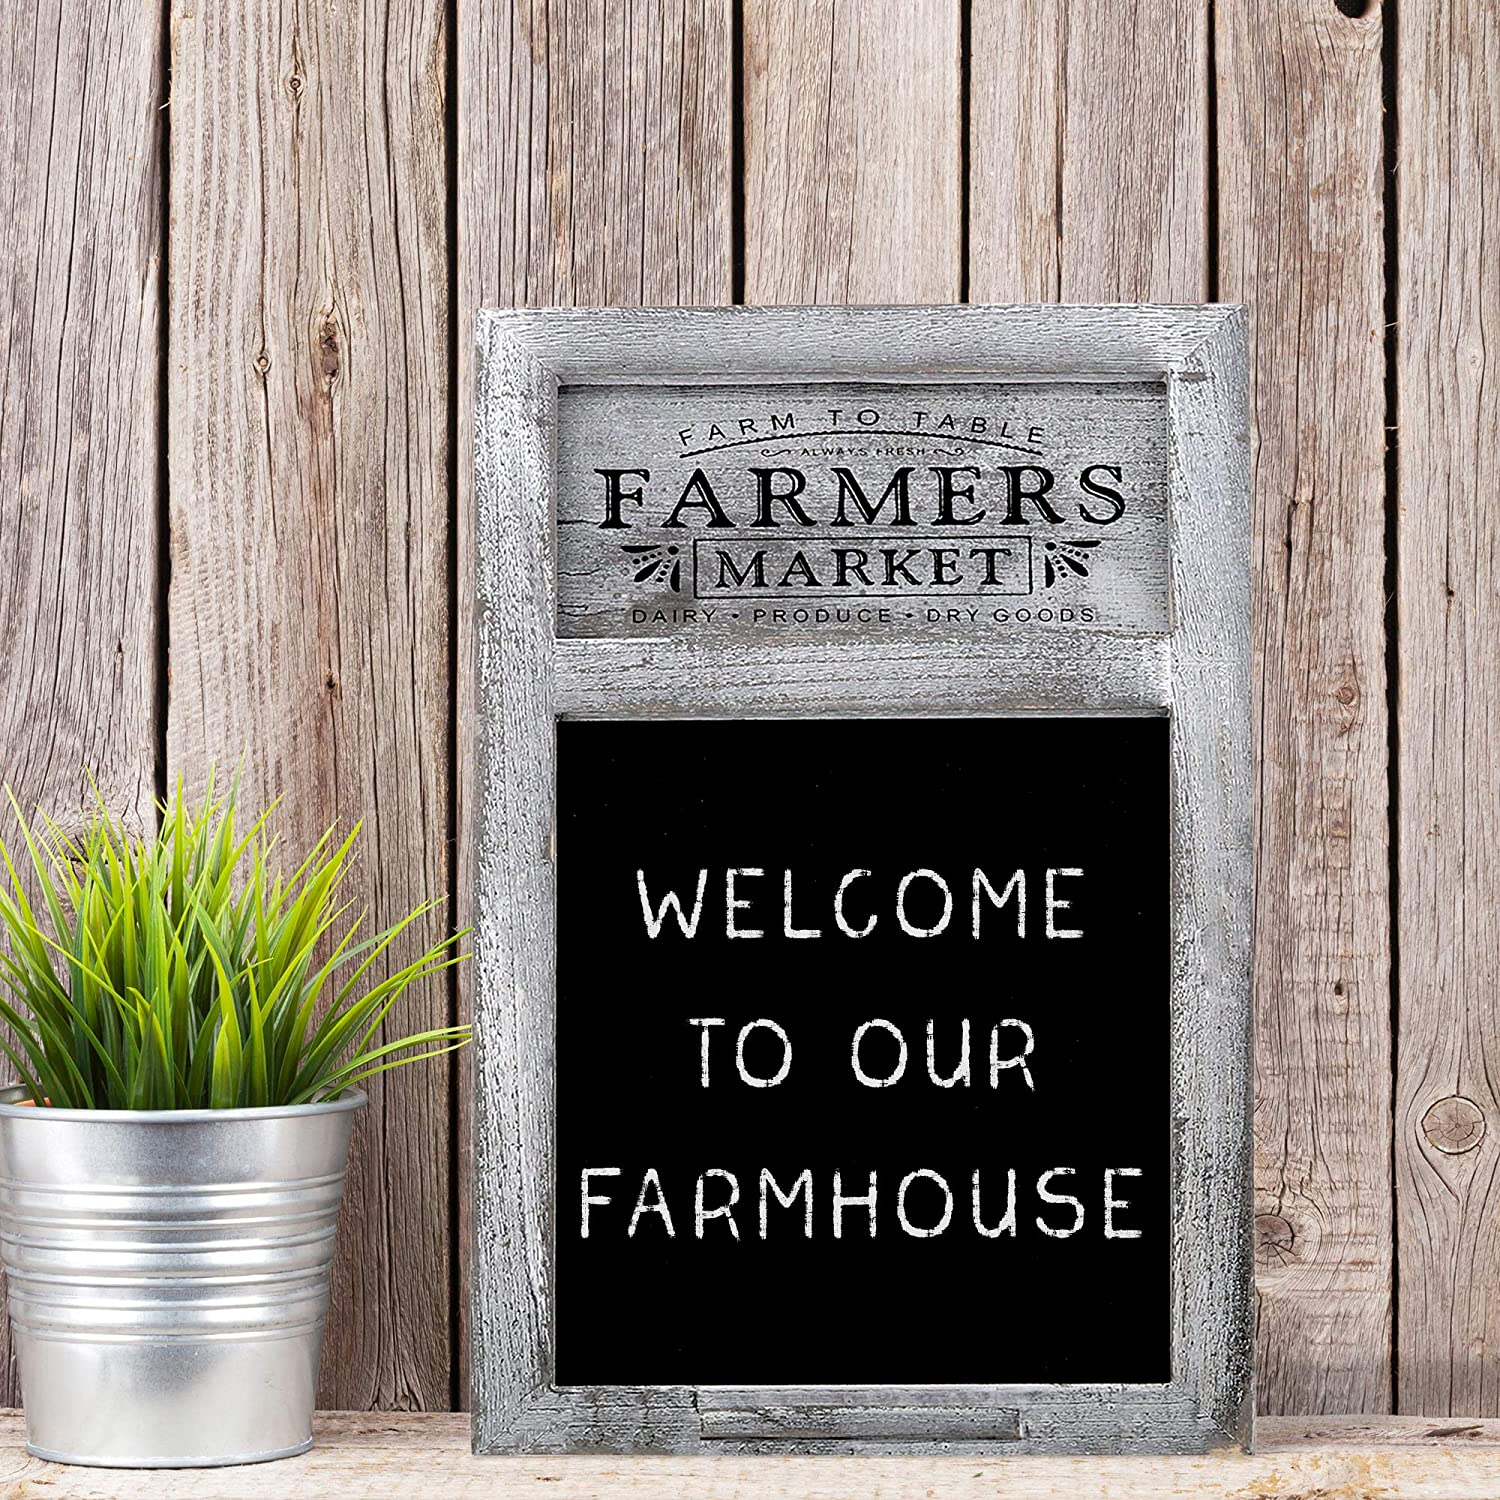 "Barnyard Designs Rustic Farmers Market Chalkboard Sign - Decorative Chalkboard Display Board for Restaurant, Kitchen, Home, Weddings and More 17"" x ..."